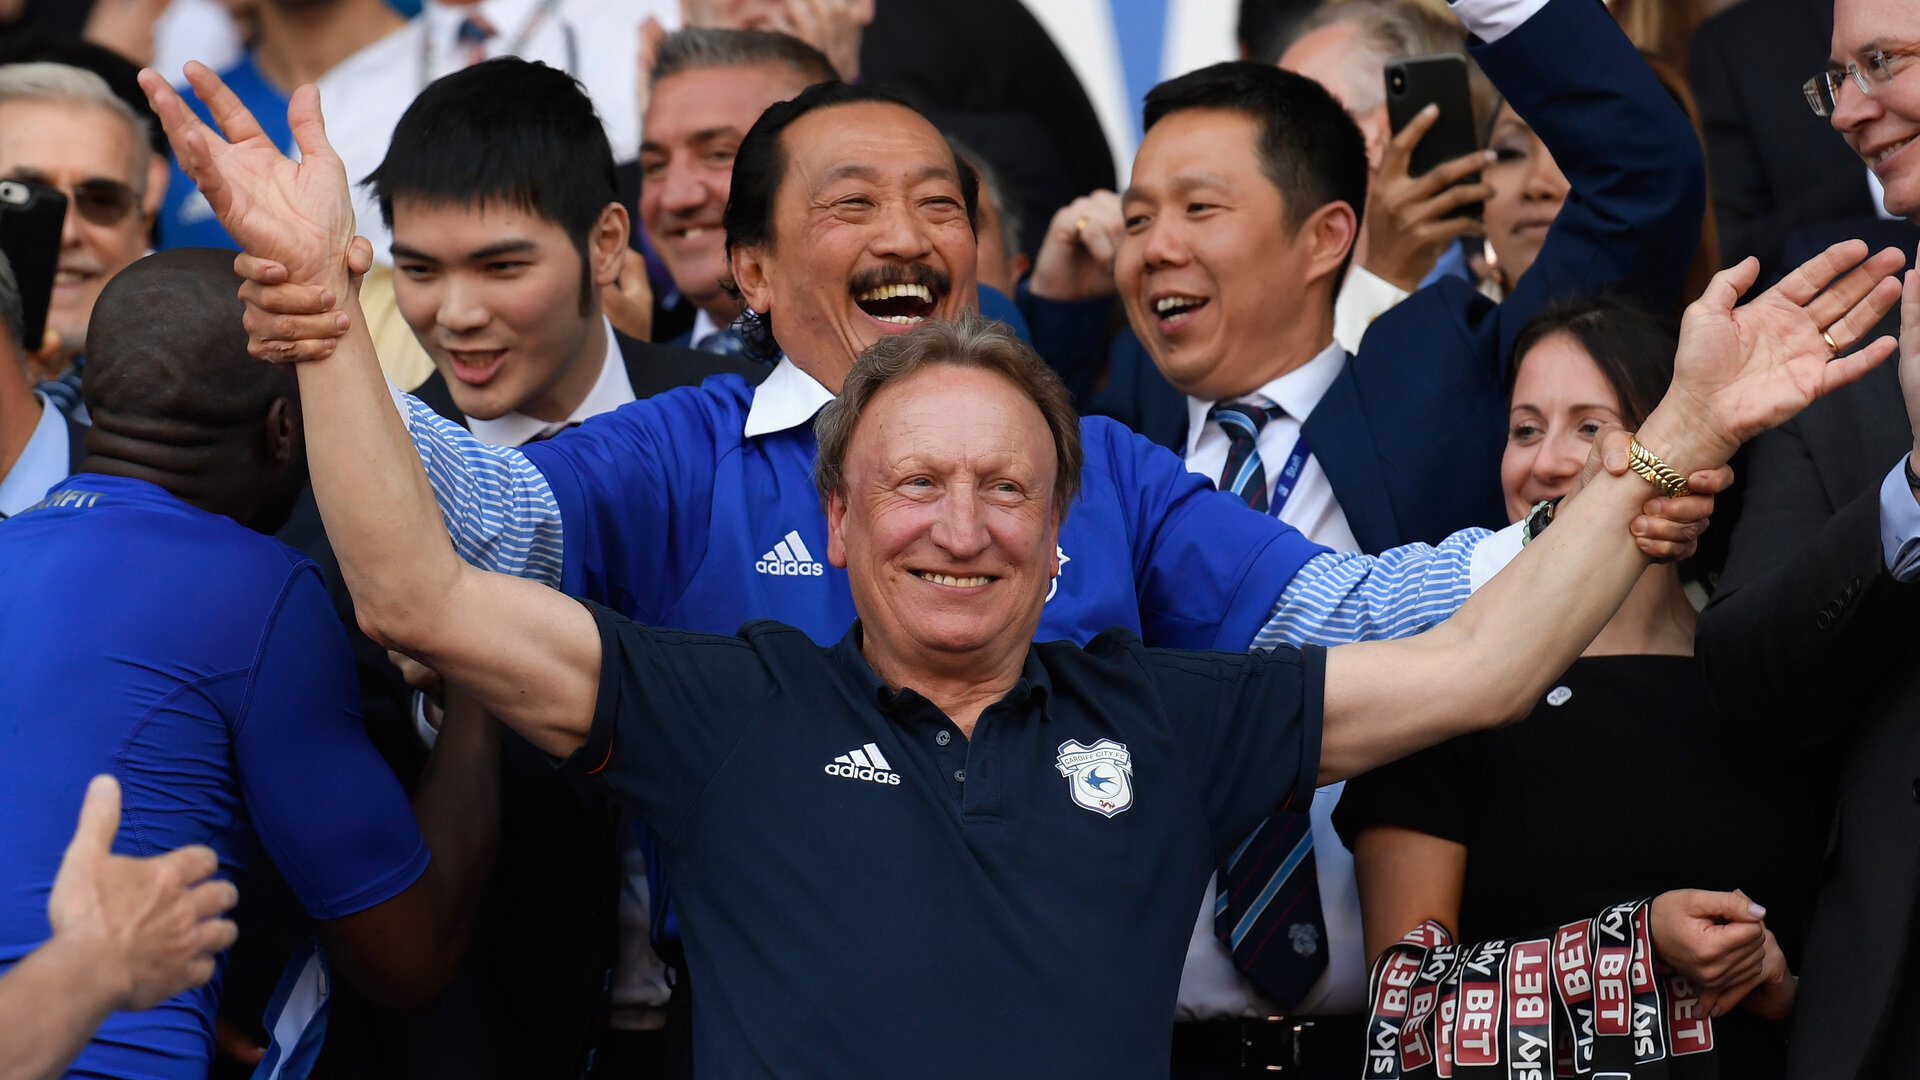 CARDIFF, WALES - MAY 06:  Cardiff owner Vincent Tan and manager Neil Warnock celebrate promotion to the premier league after the Sky Bet Championship match between Cardiff City and Reading at Cardiff City Stadium on May 6, 2018 in Cardiff, Wales.  (Photo by Stu Forster/Getty Images)